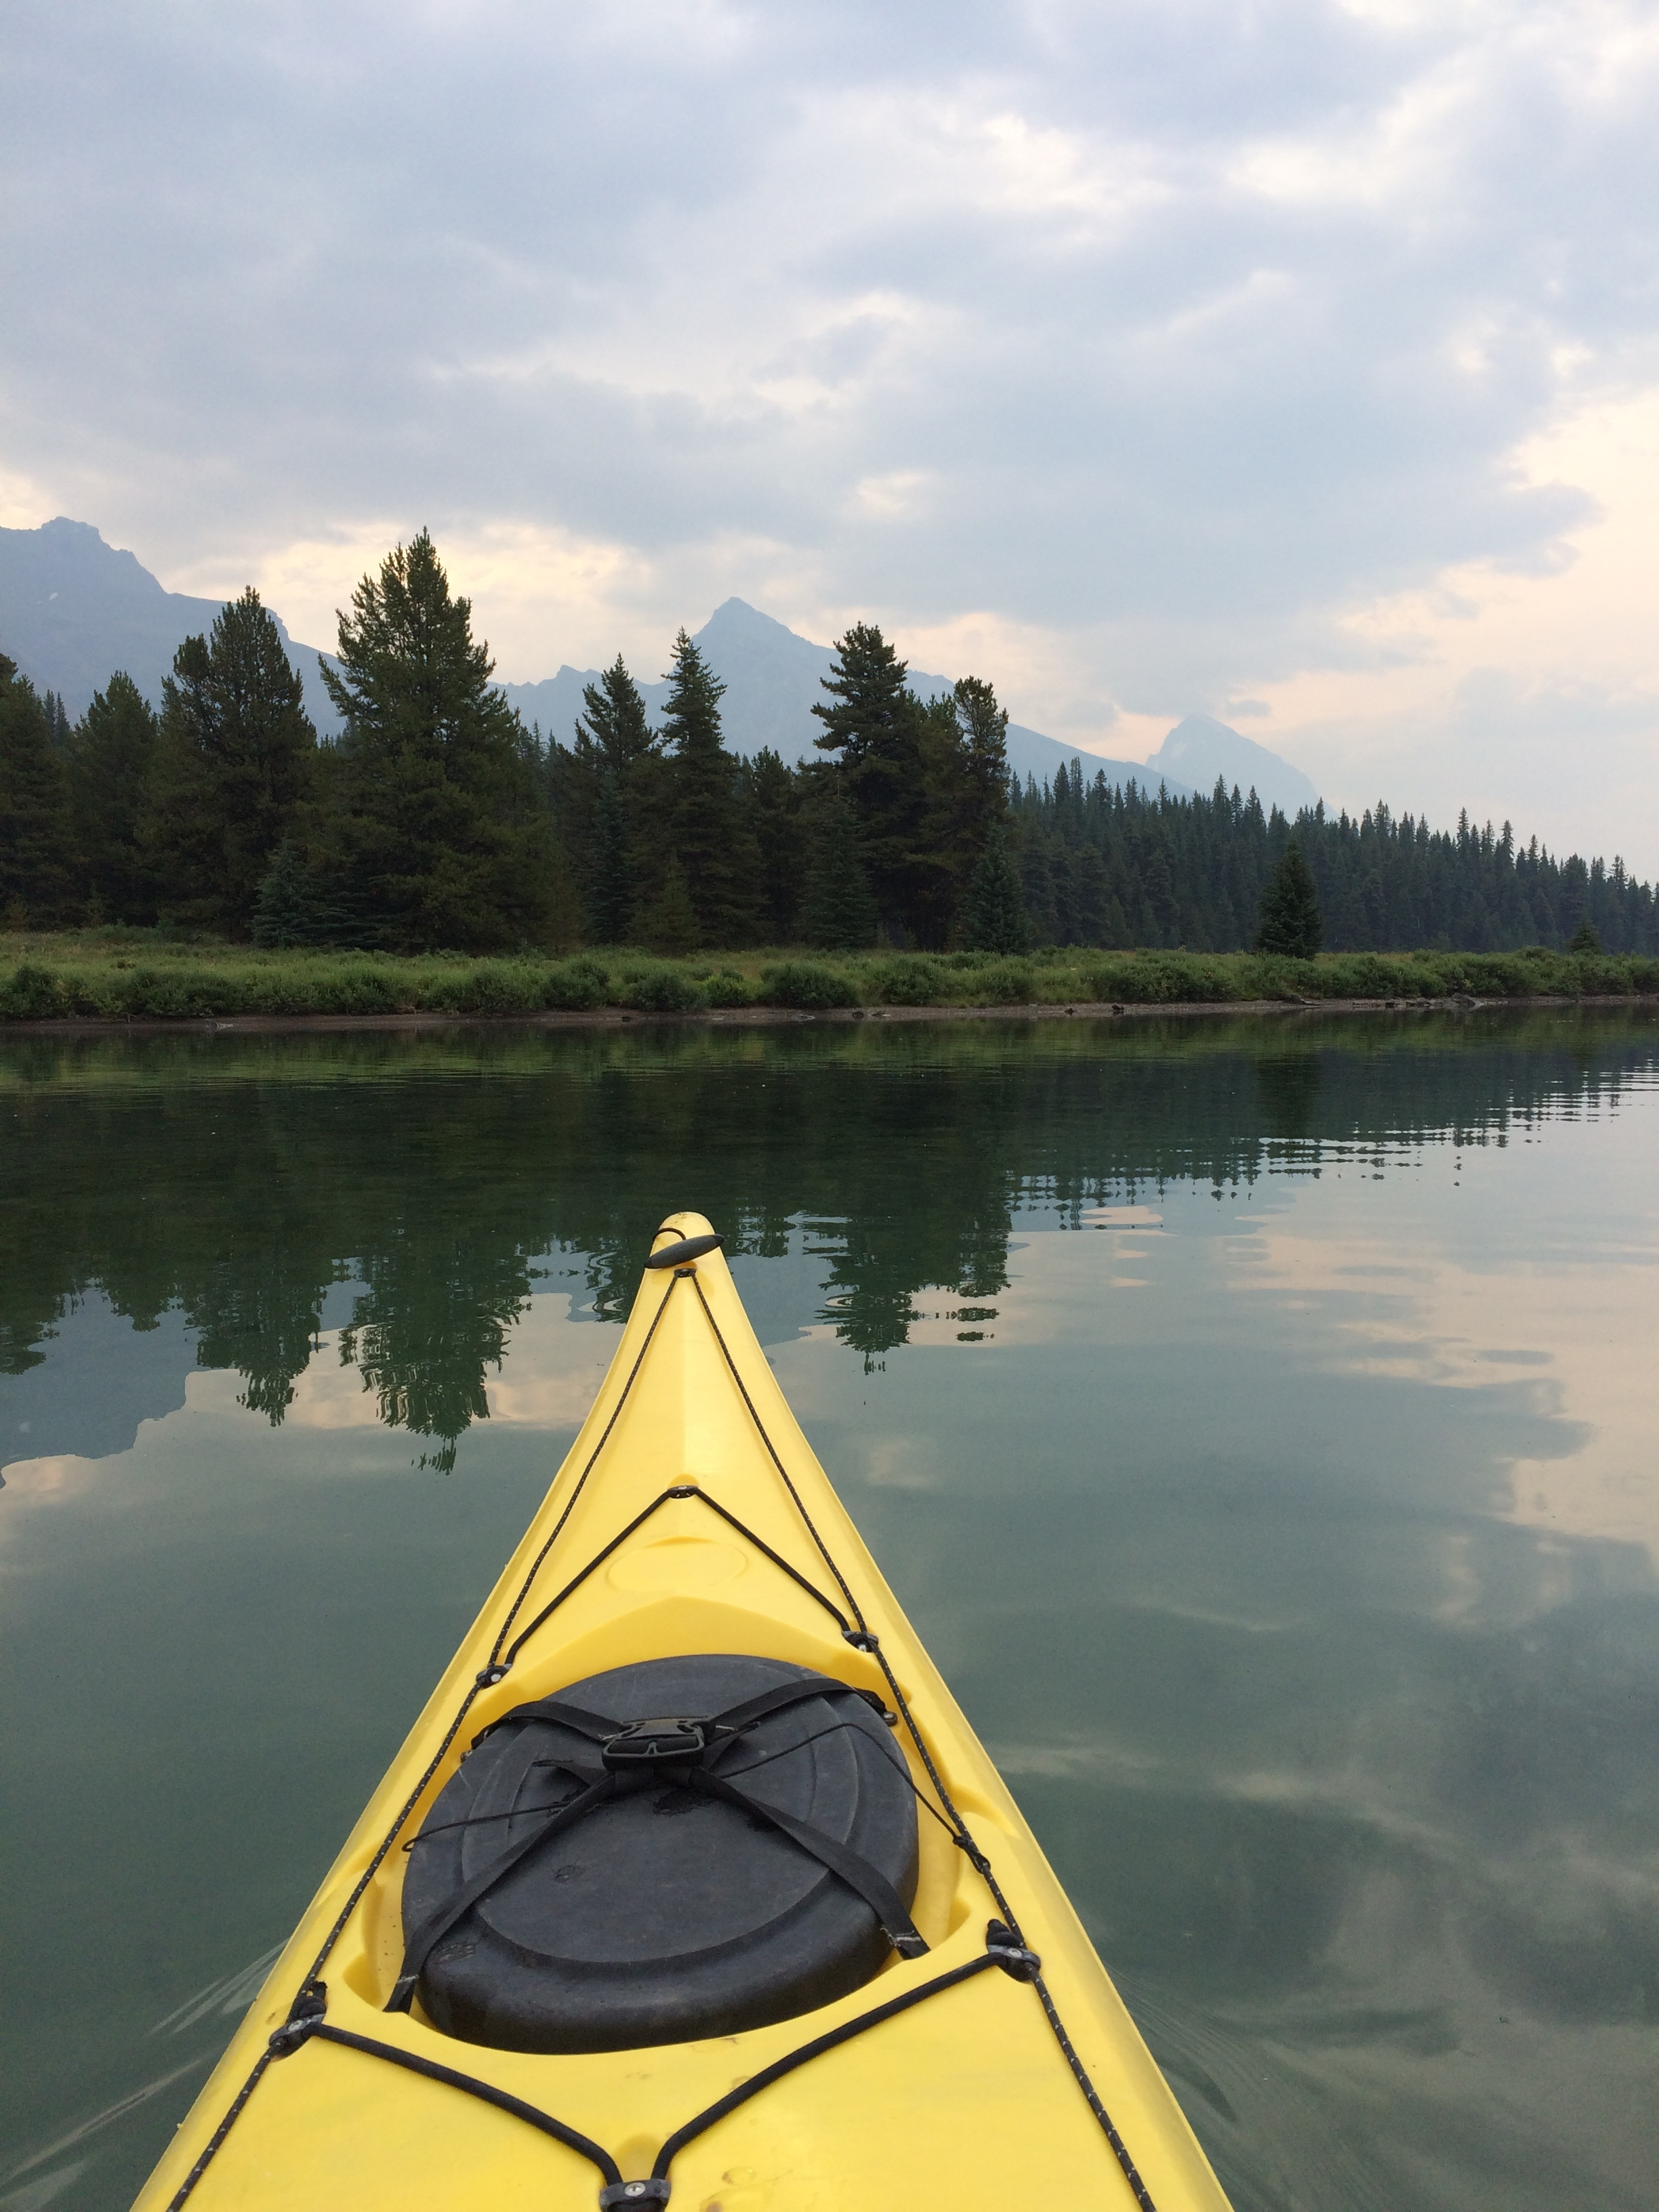 Rent a kayak and go exploring while getting some exercise on your next trip.